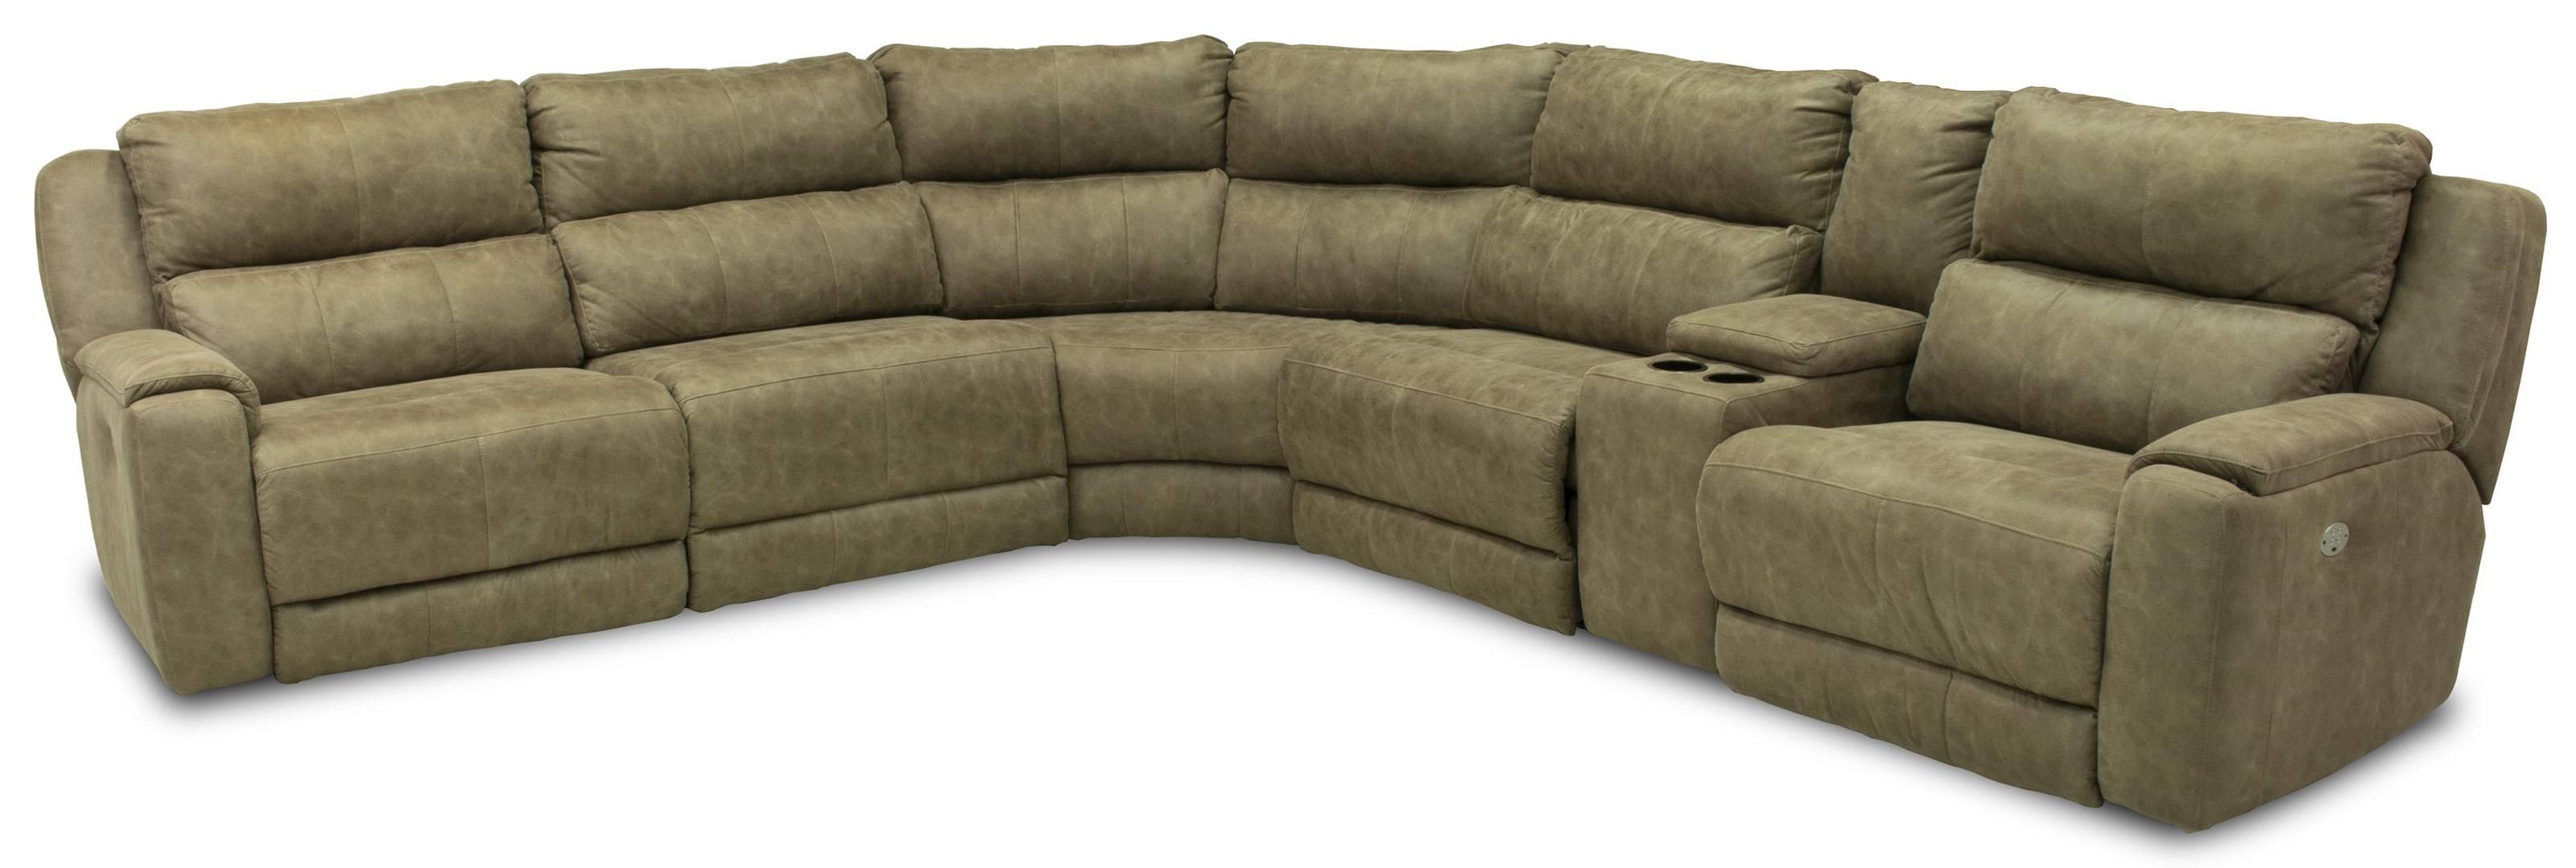 Sectional Sofa with 5 Seats and Cup Holders and Power Headrests